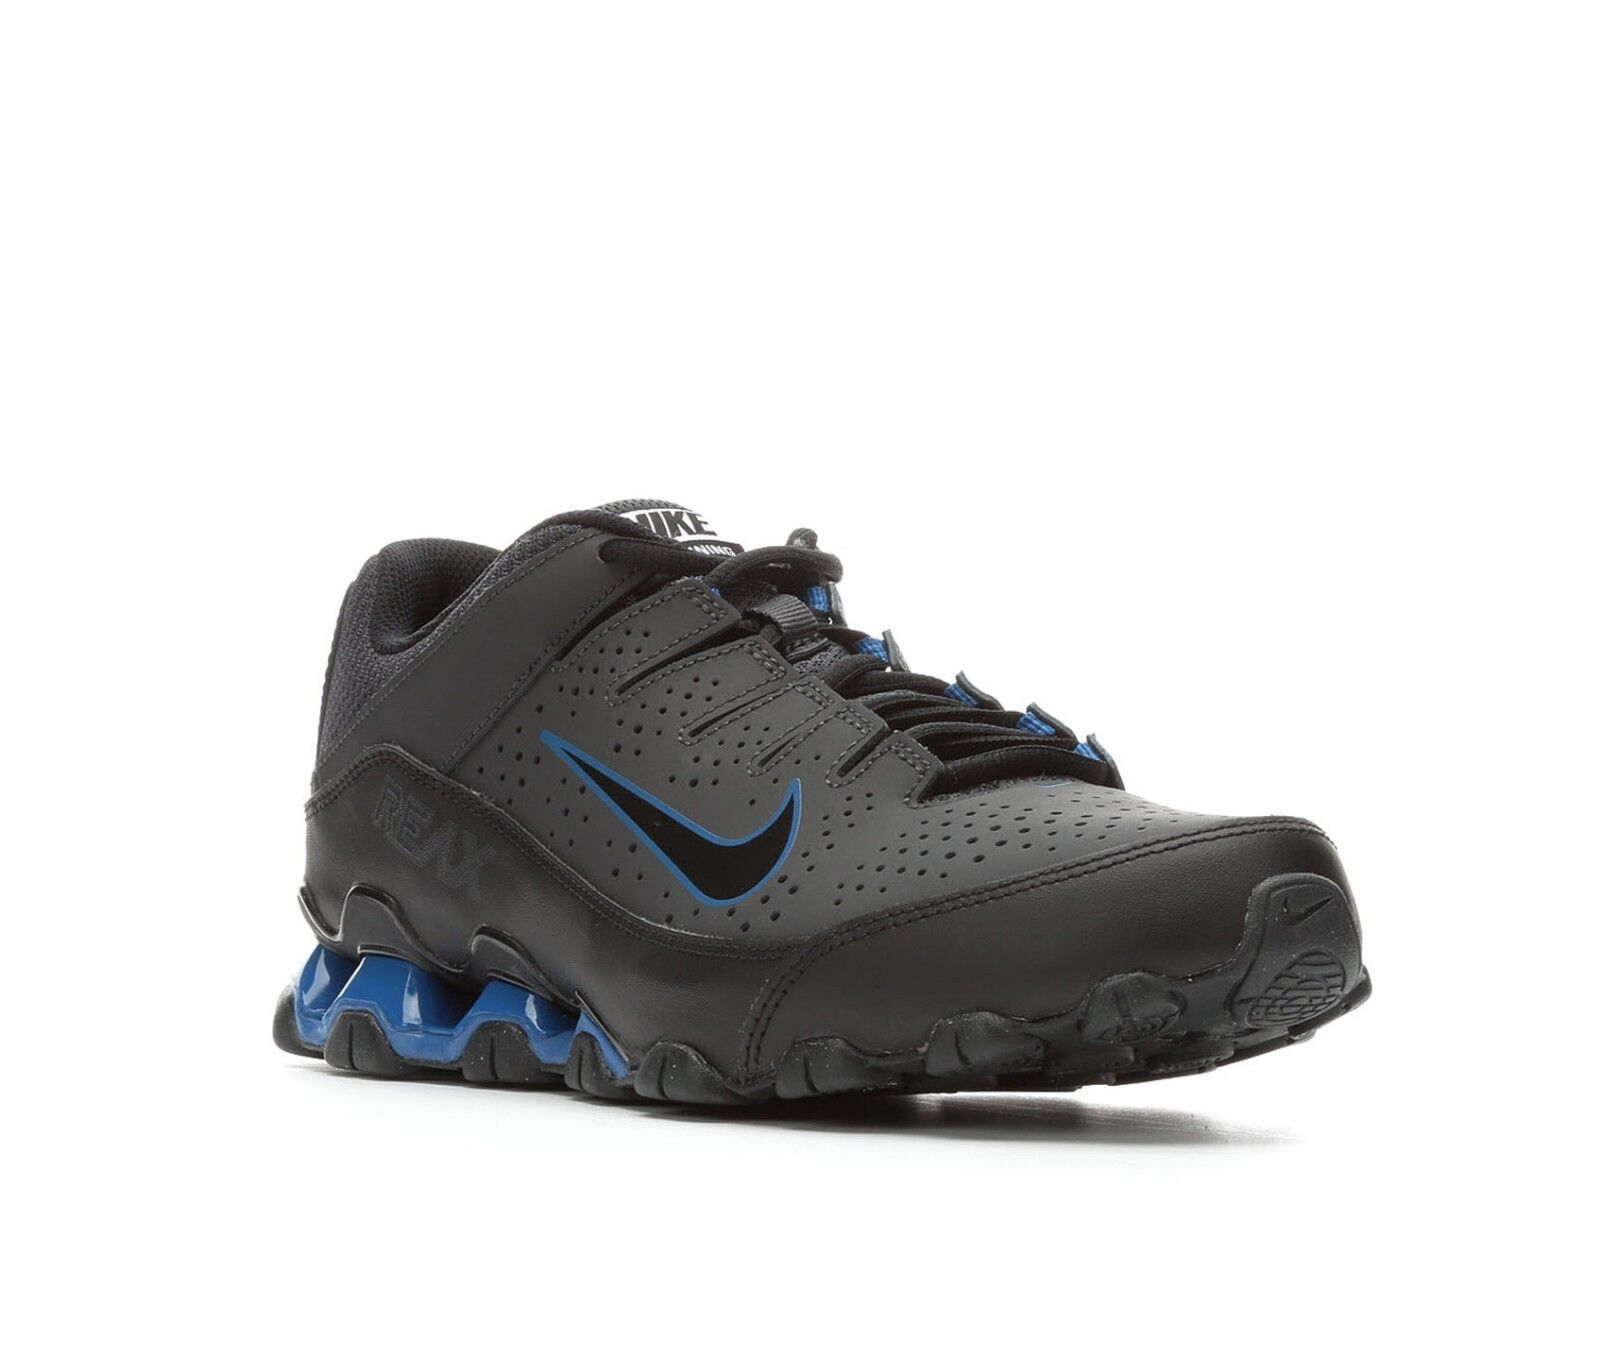 NIB Men's Nike Reax 8 TR 616272 010 Leather Running  Training Shoes Torch BkBl